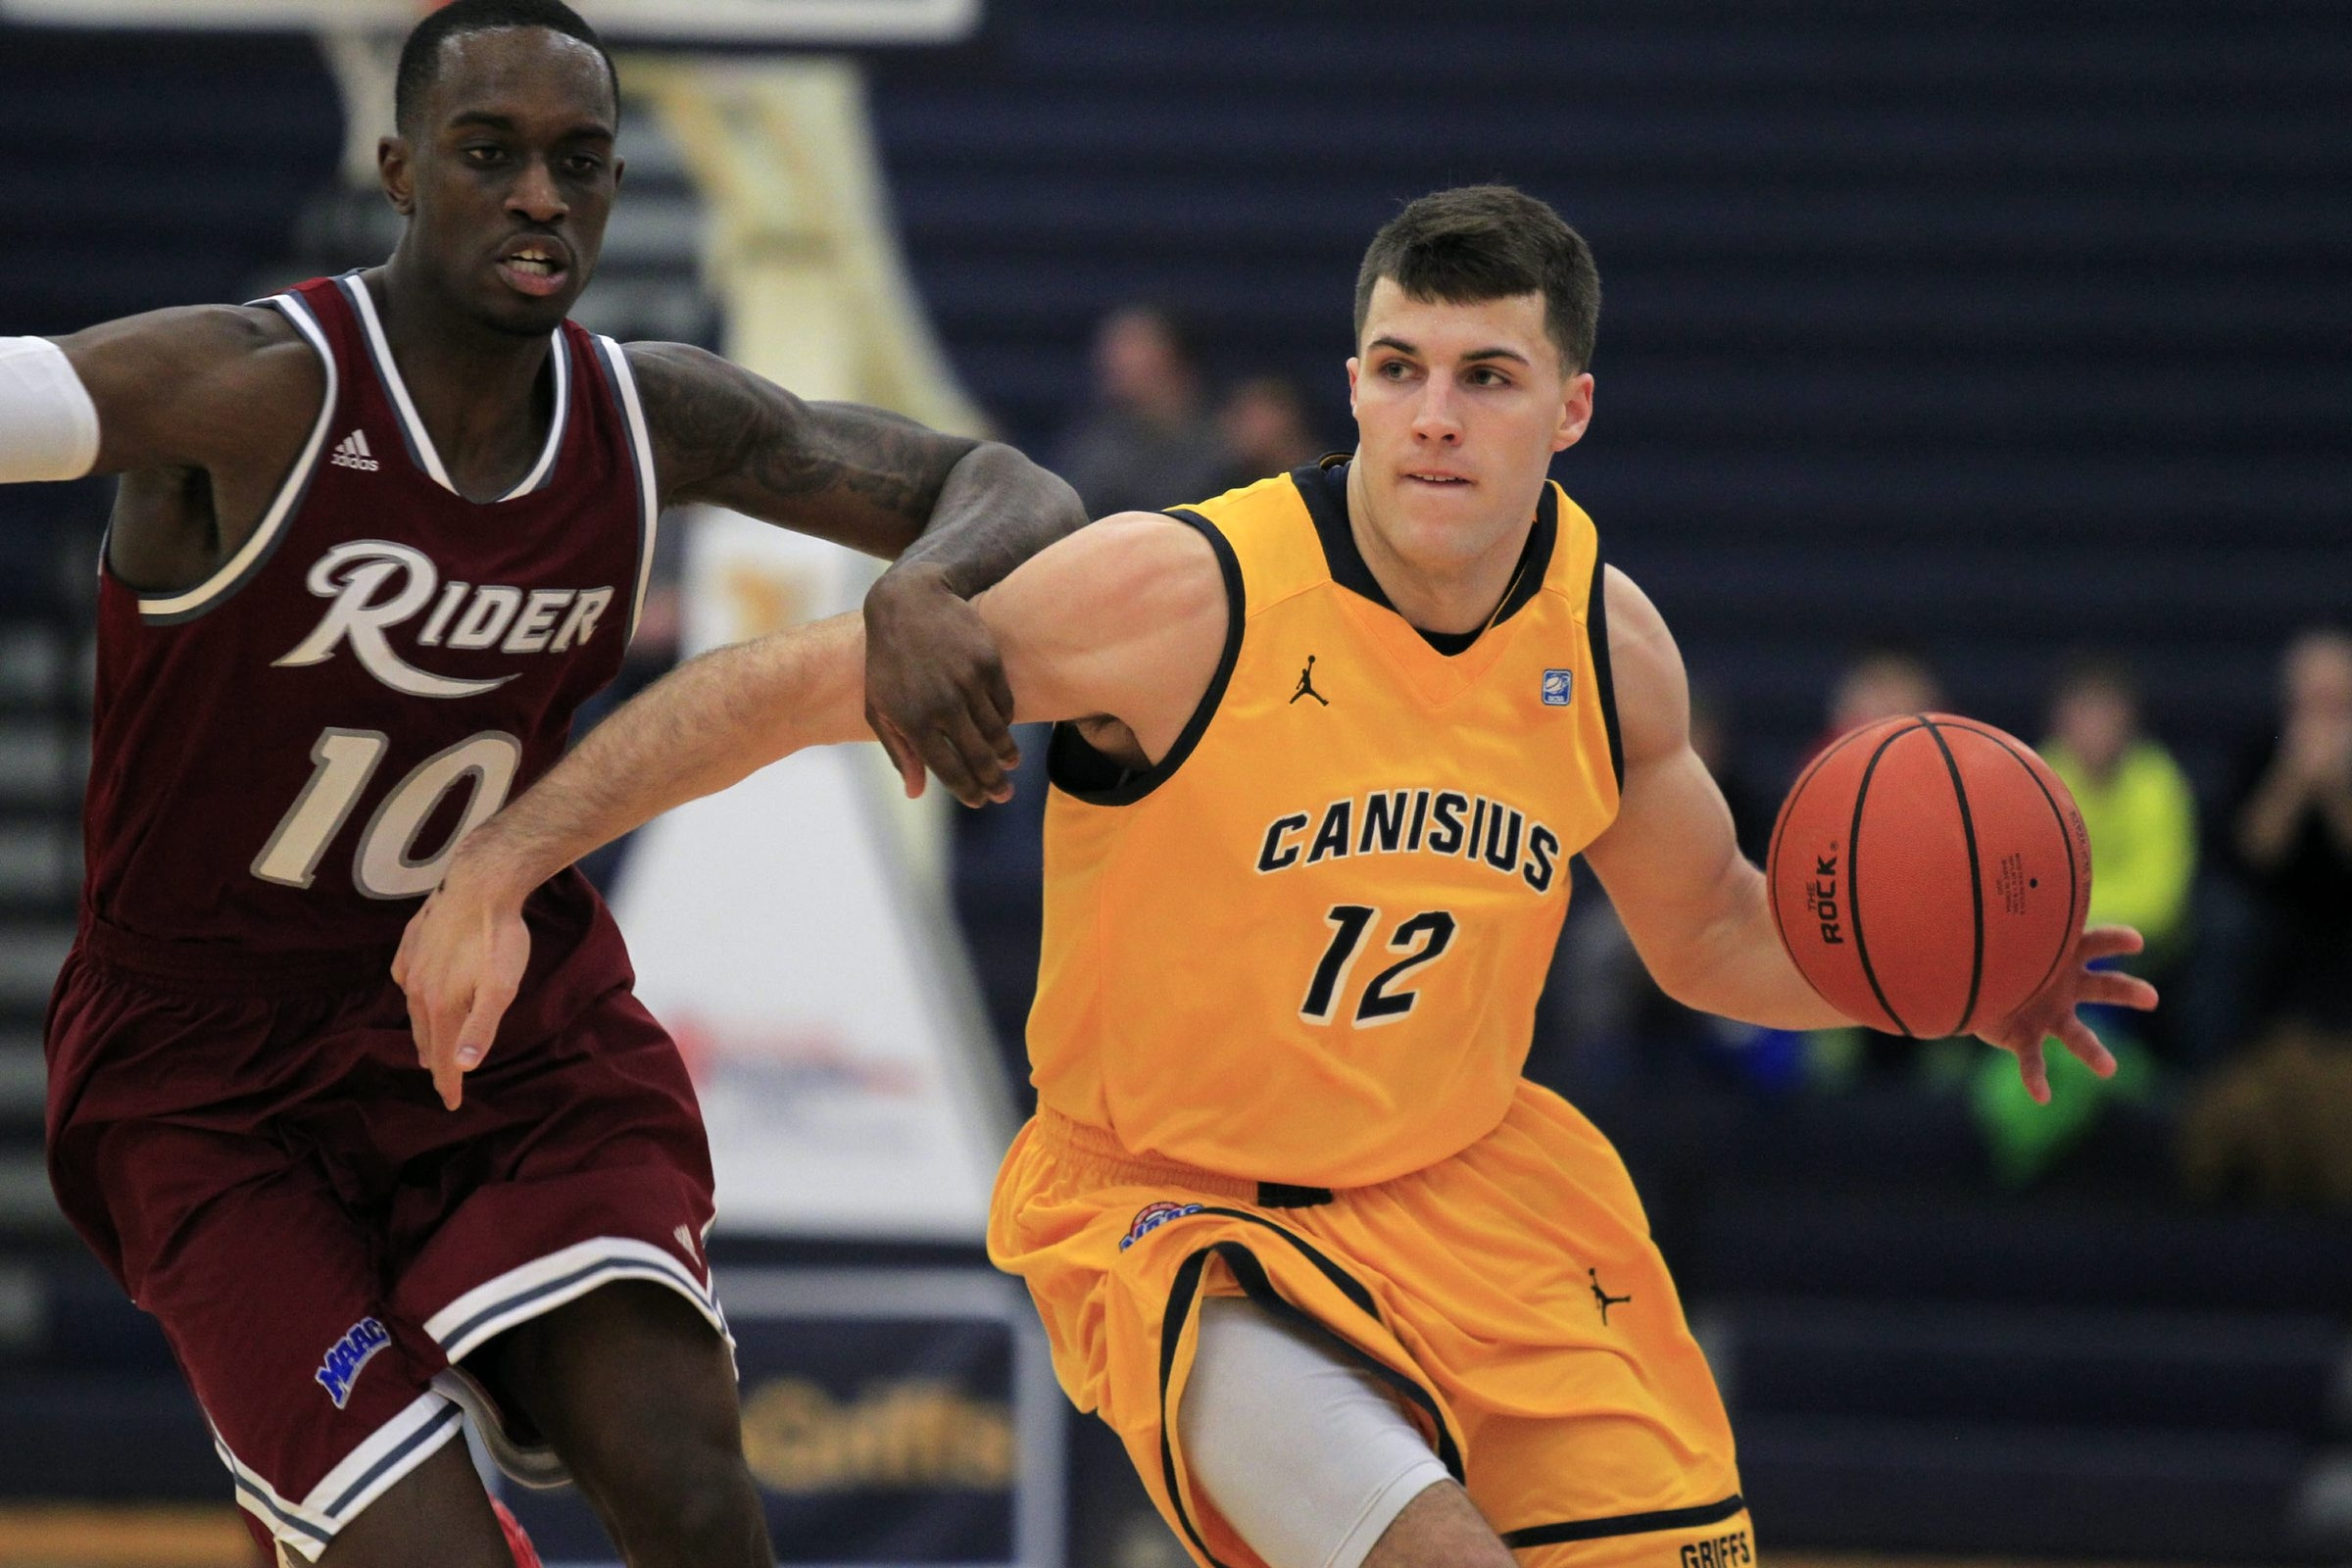 Billy Baron will play his final home games for Canisius this week.